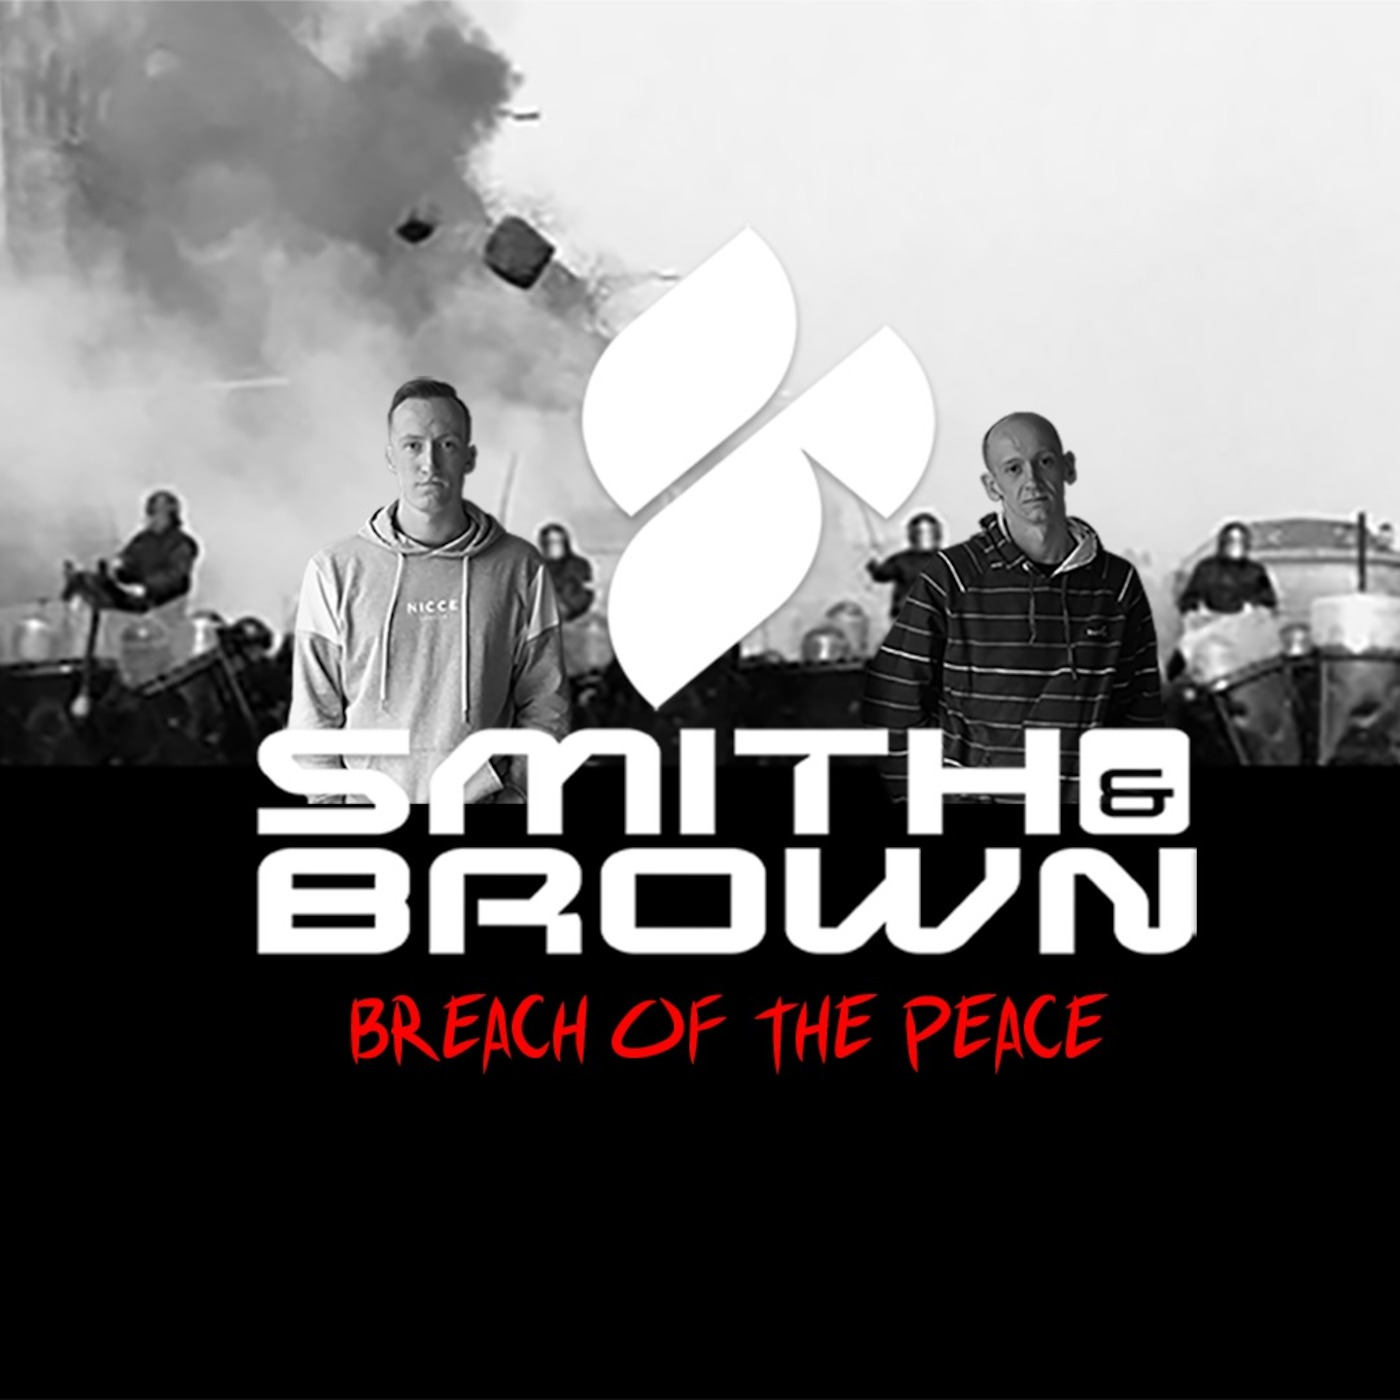 Episode 046 Of Our Breach The Peace Radio Show 1st Aired On Afterhours FM 28 10 2017 01 Cressida